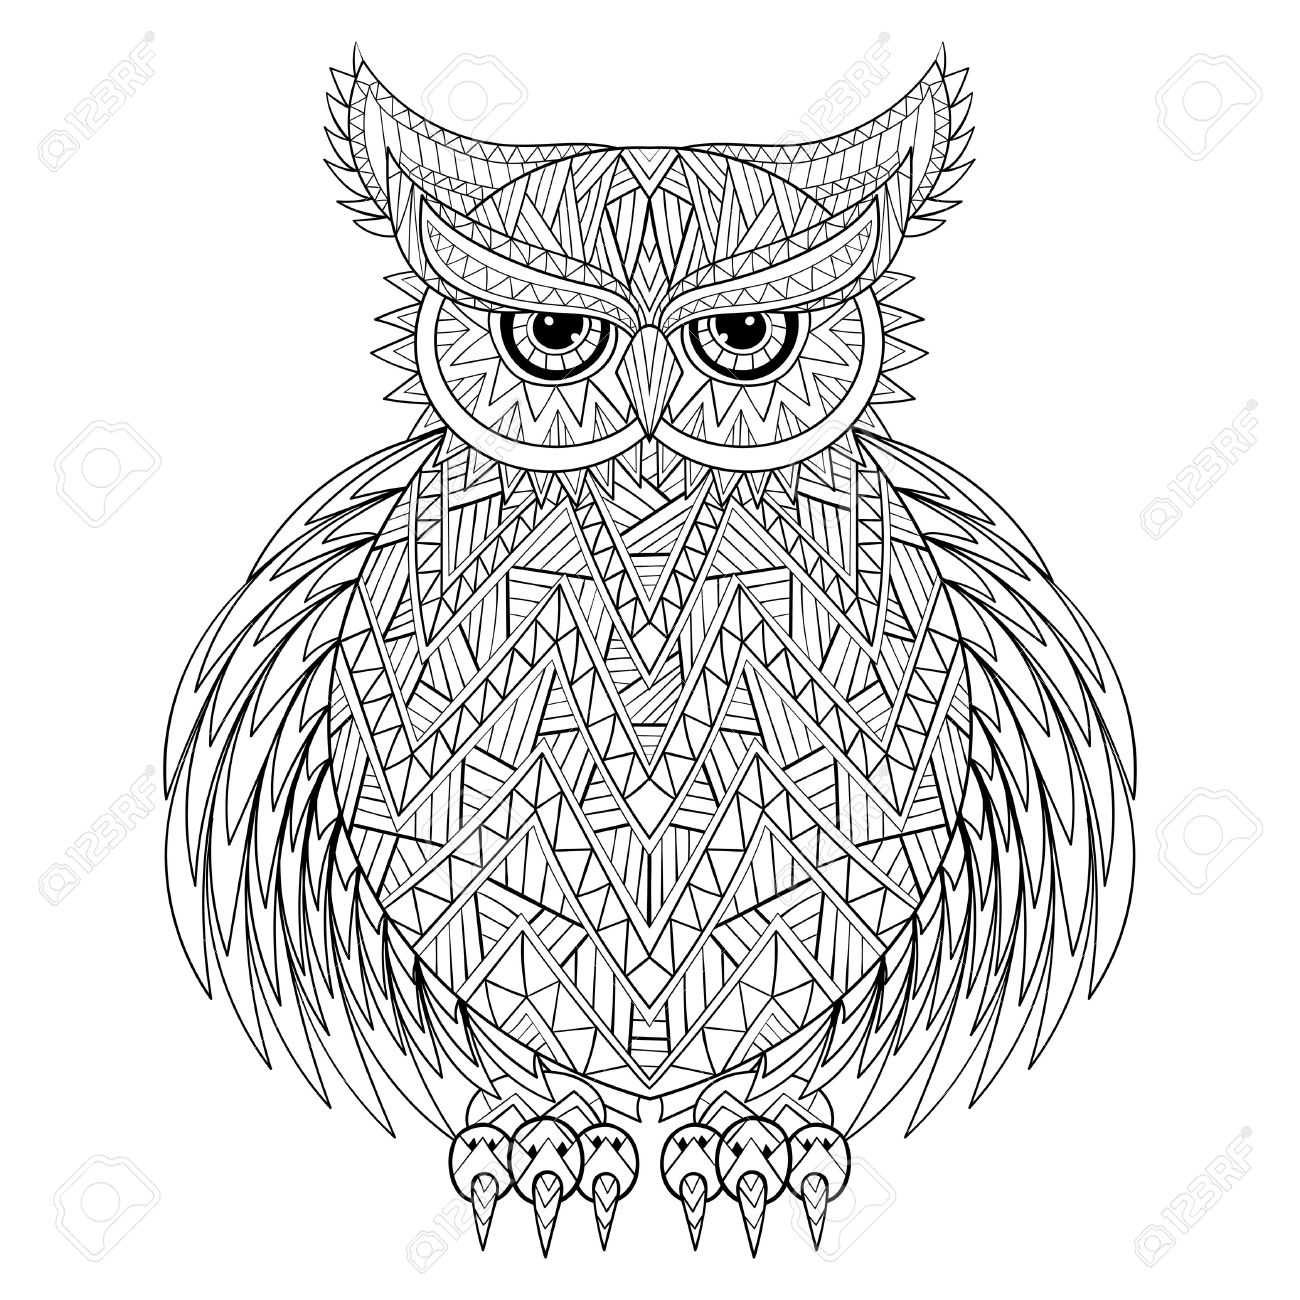 Horned Owl Drawing at GetDrawings.com | Free for personal use Horned ...